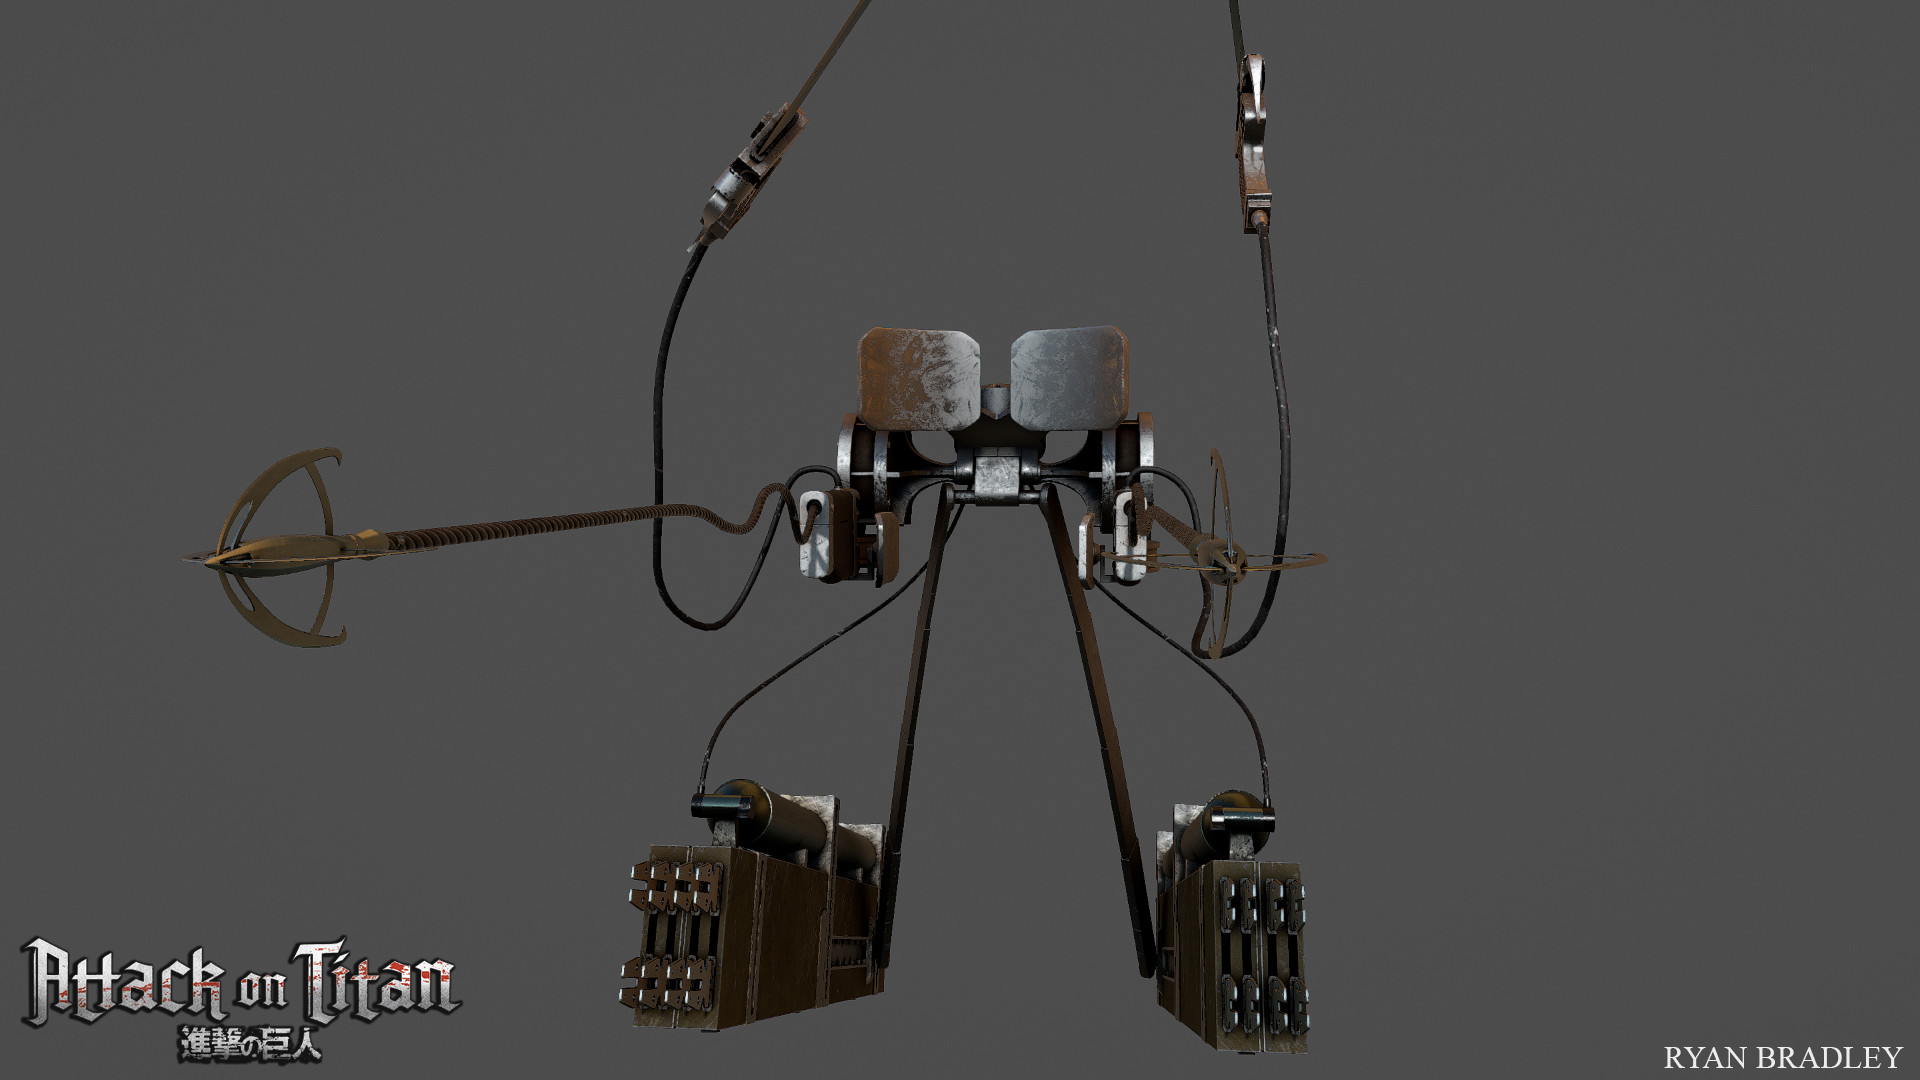 Images Of Real Attack On Titan Gear